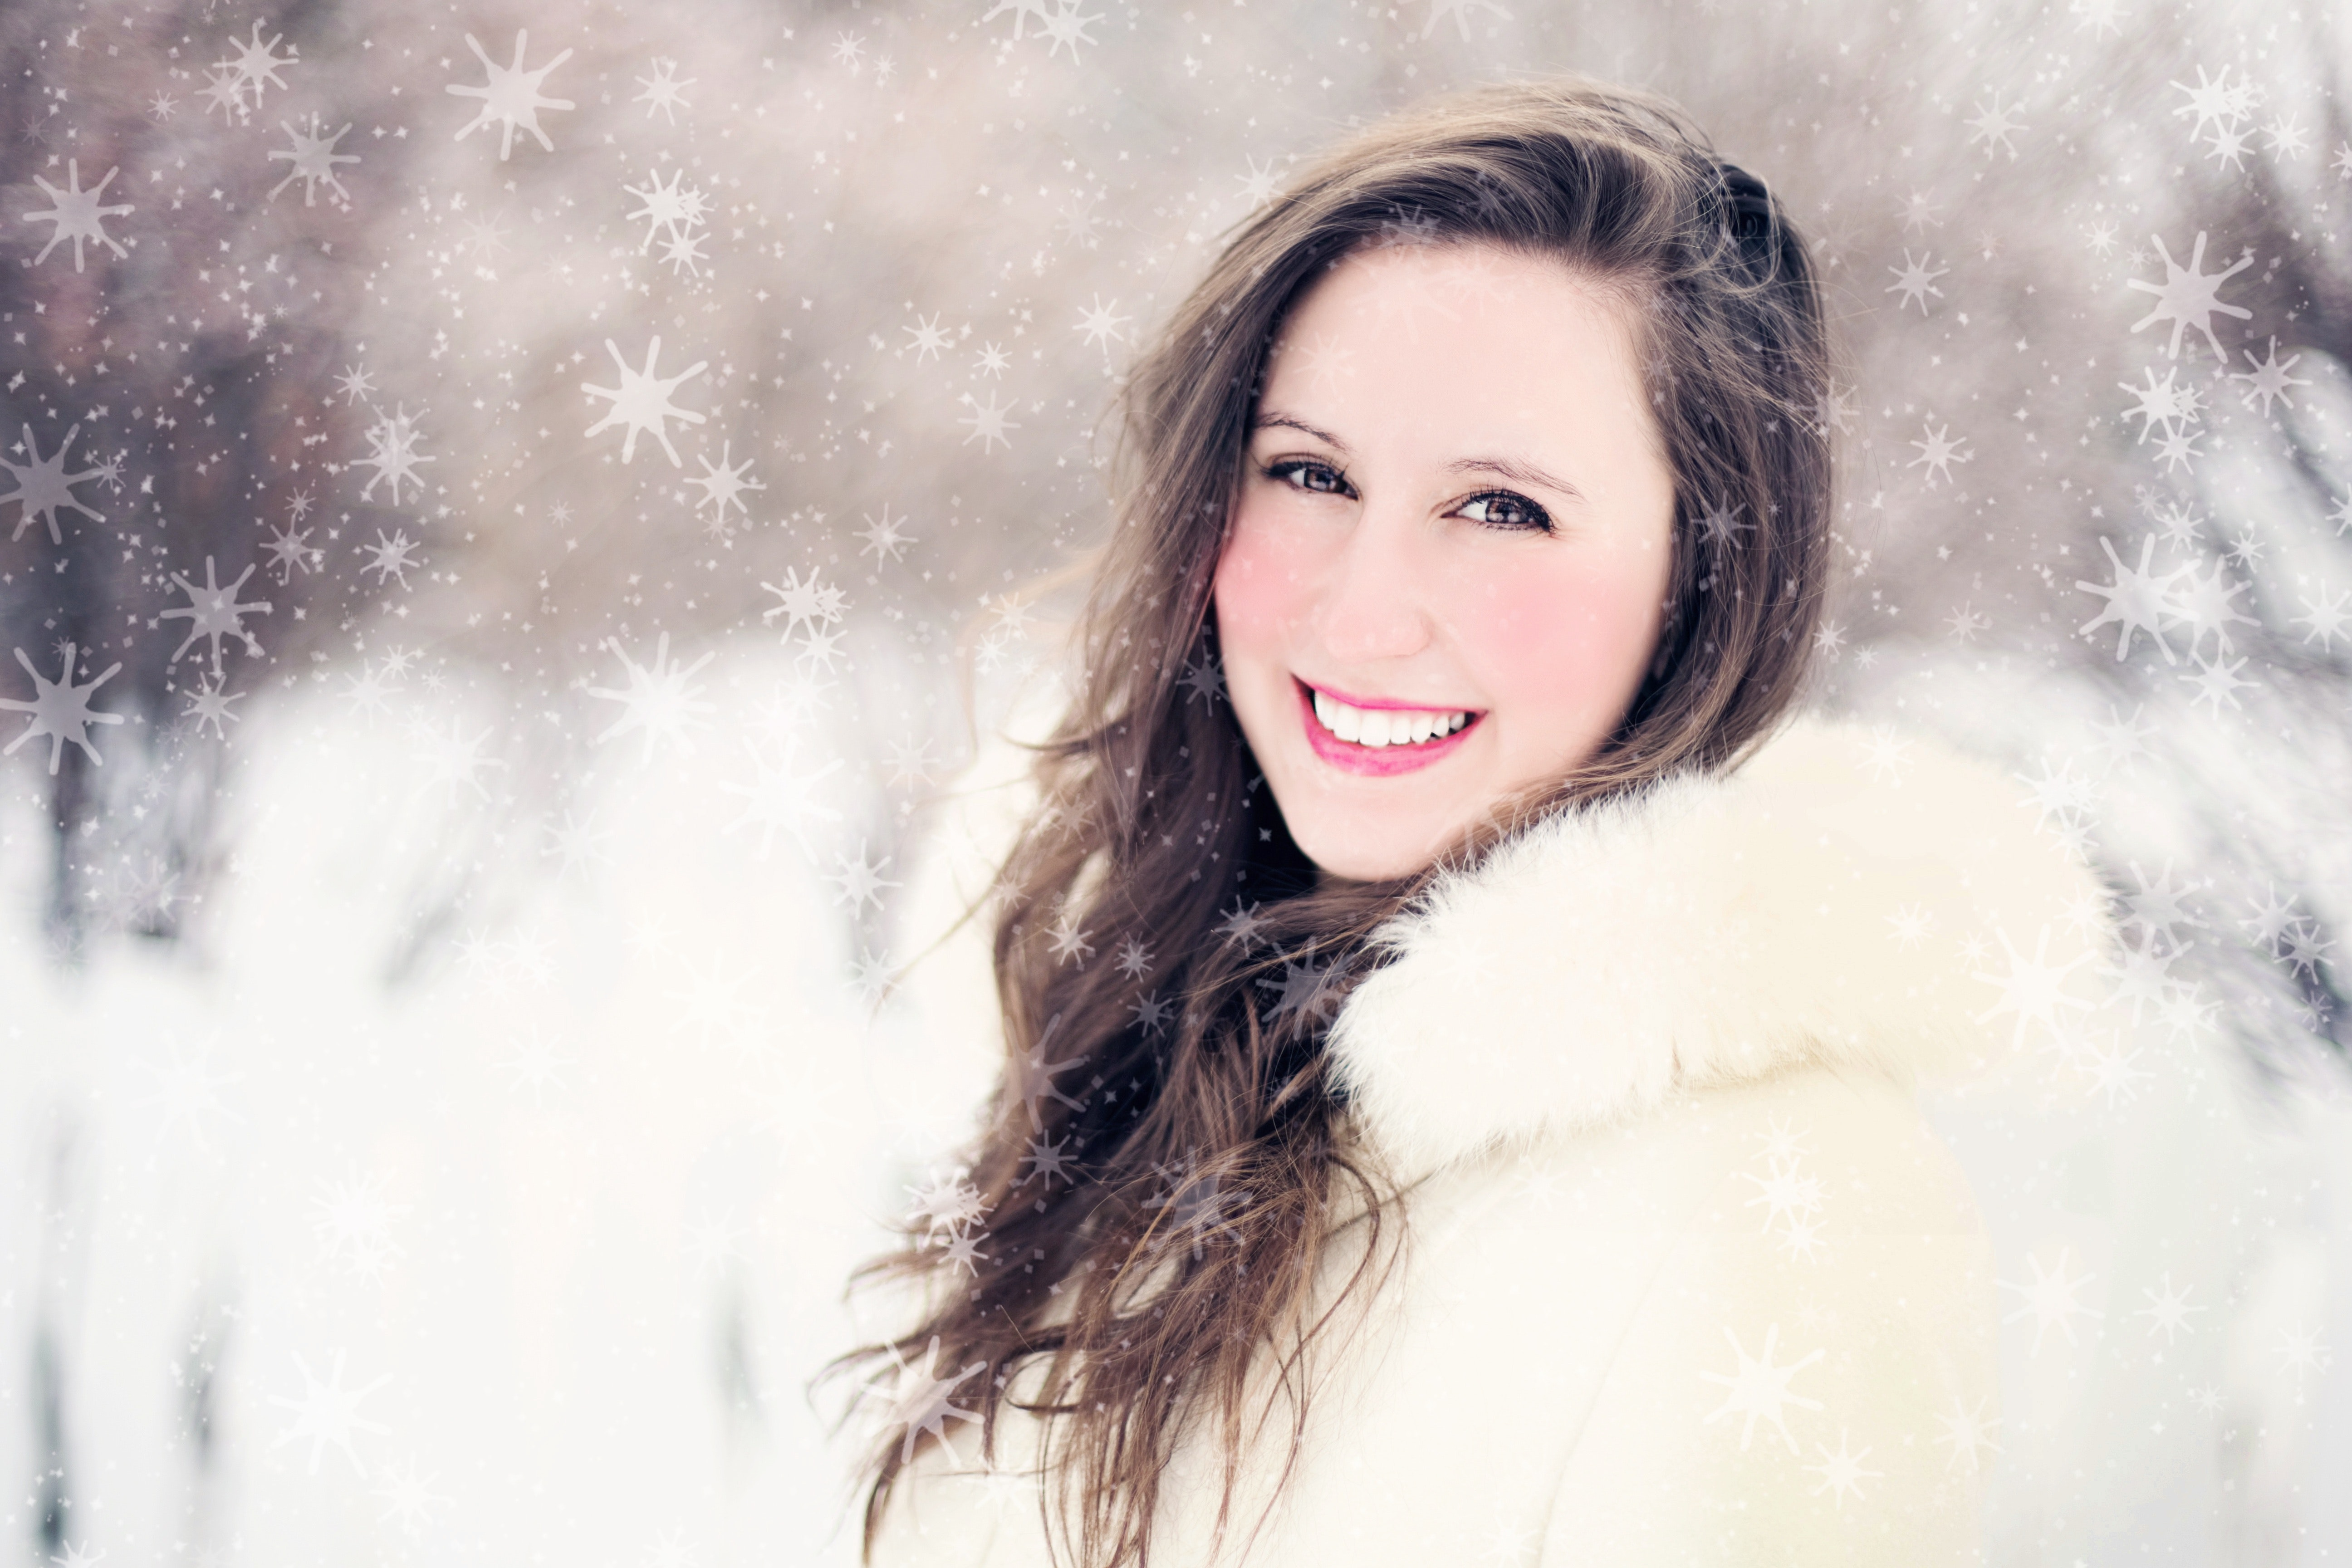 Woman in white furred jacket smiling in front photo